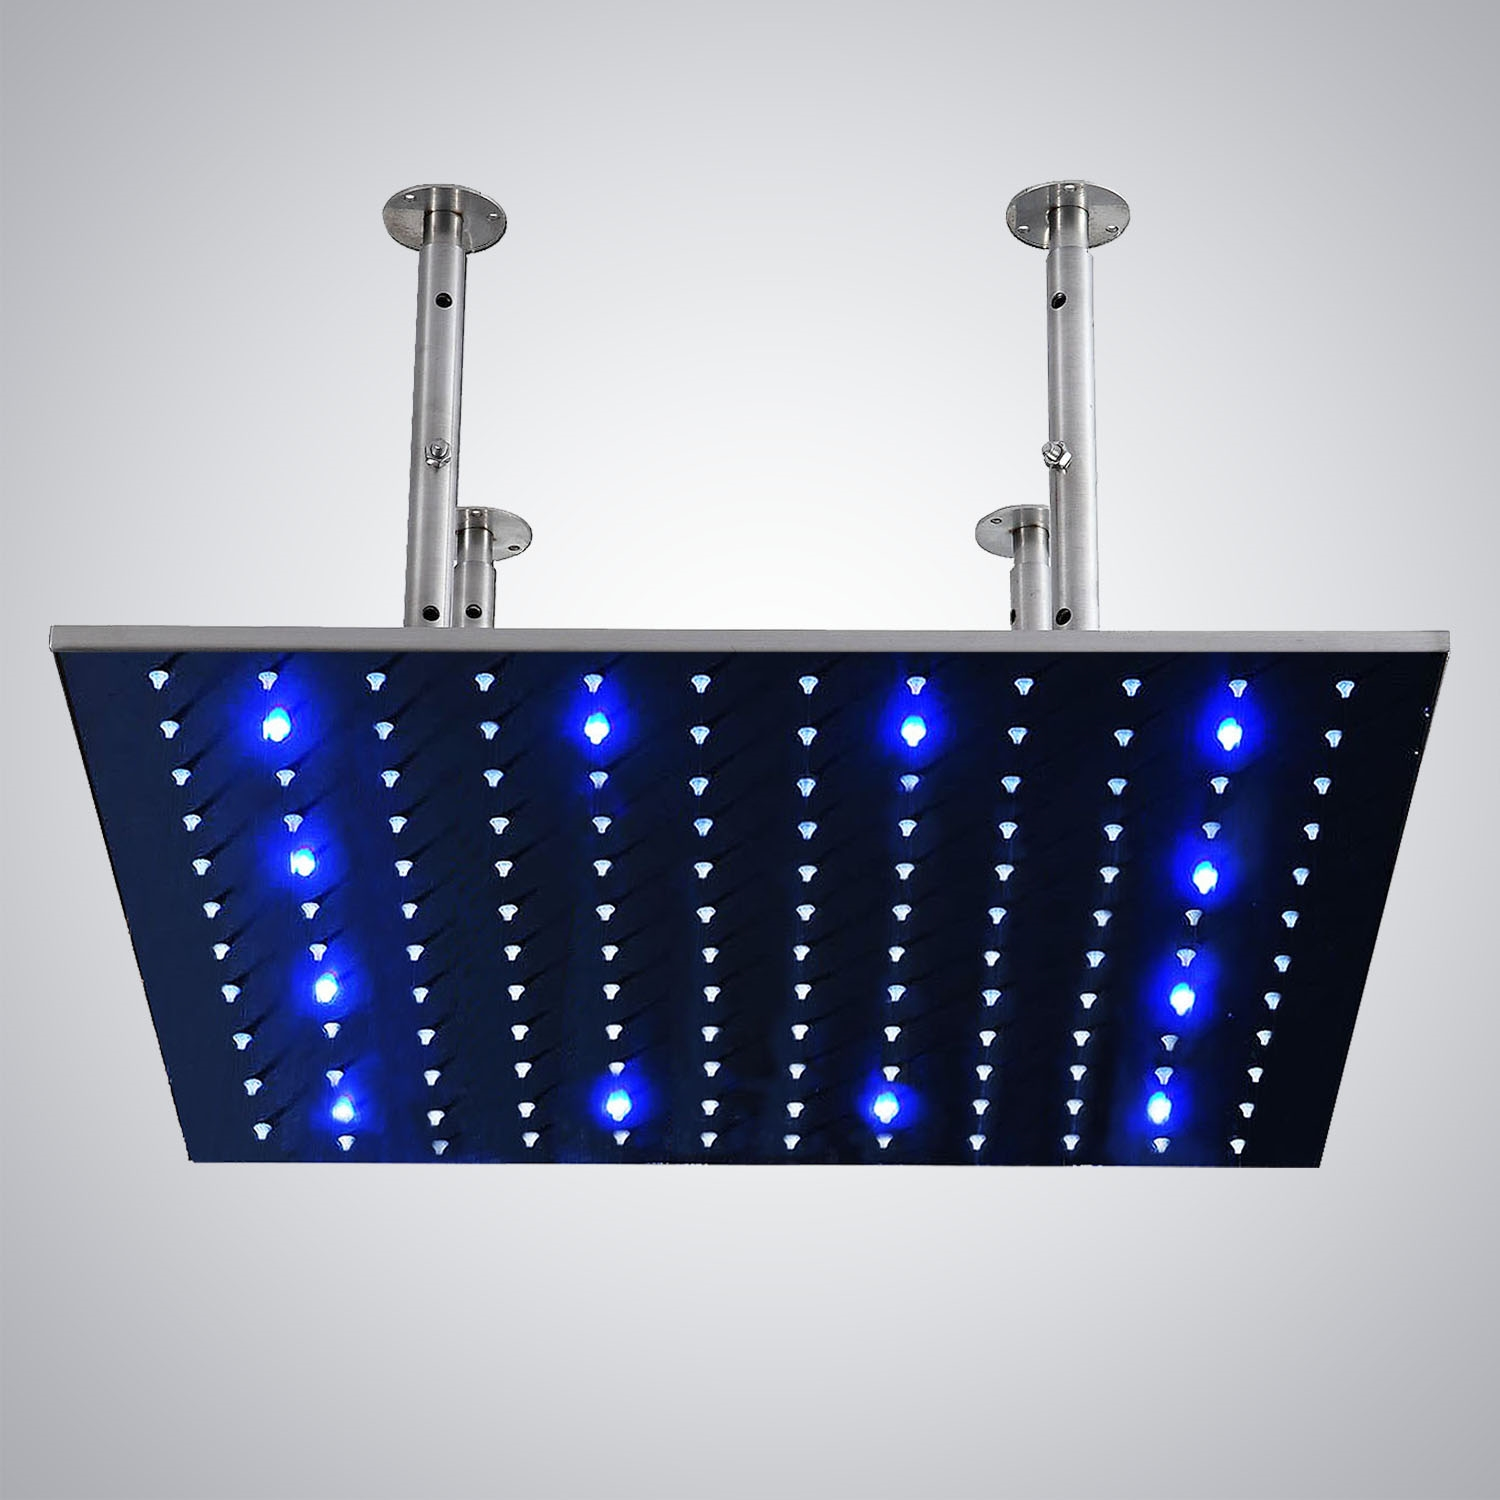 Fonatana 40 Stainless Steel Square Color Changing Led Rain Showerhead